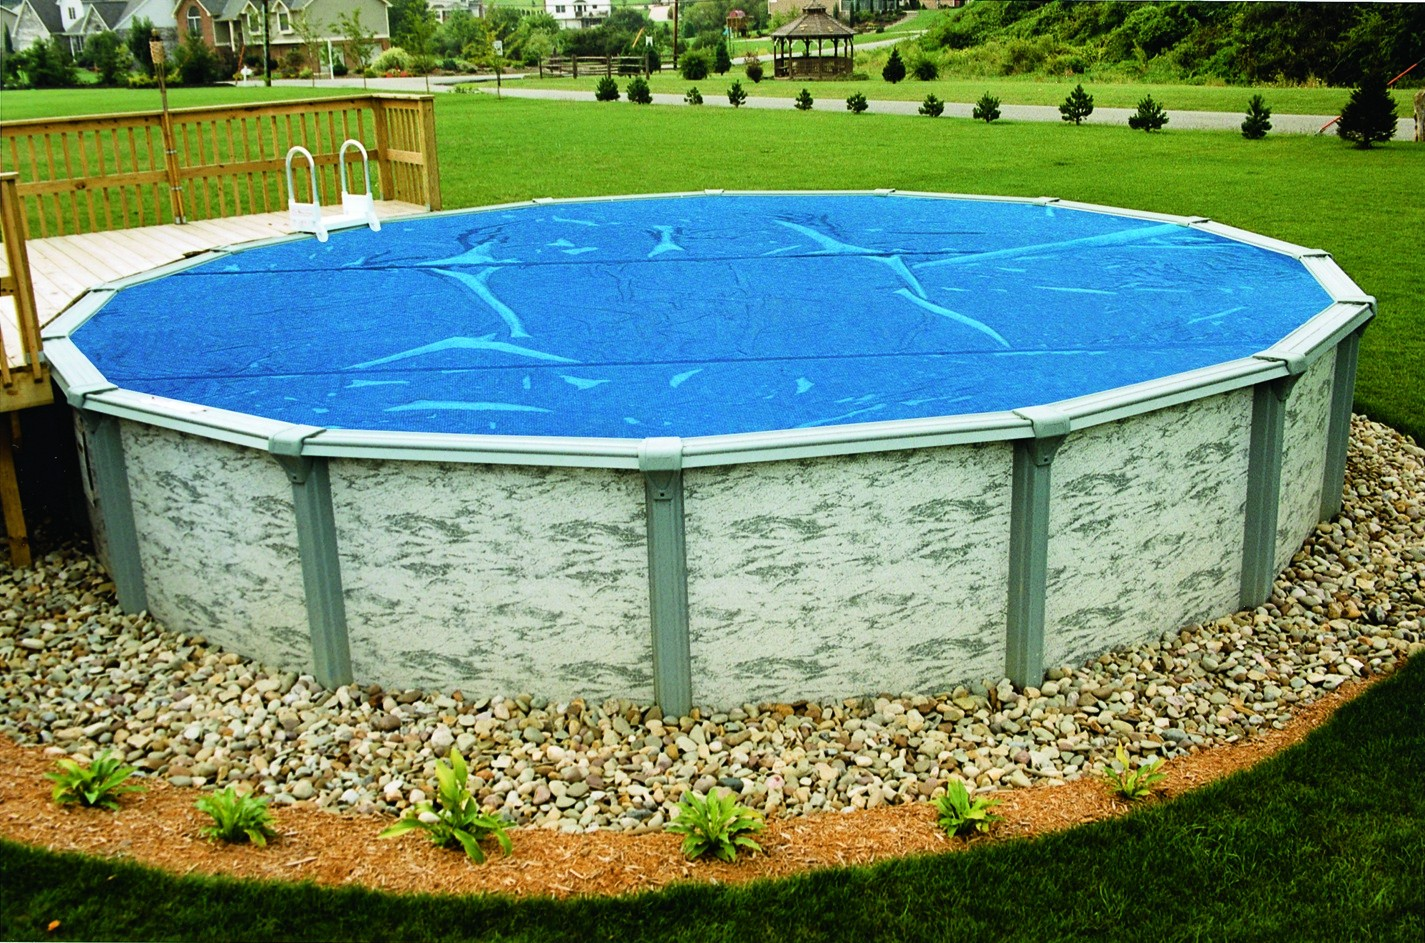 above ground pool landscaping ideas on a budget above ground pool landscaping ideas - lauren hu0026g ideas MWNXAUL